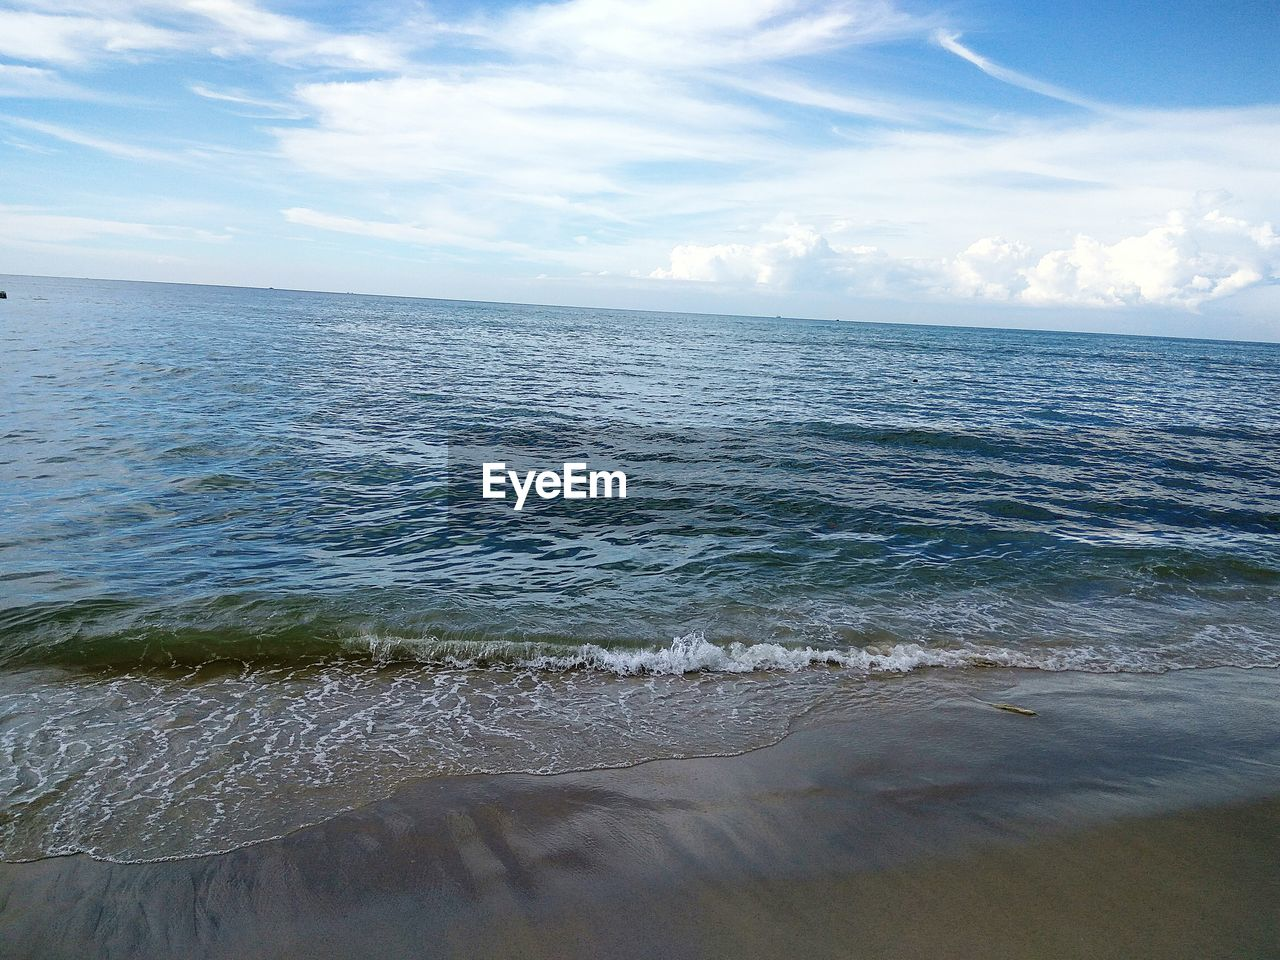 sea, water, horizon over water, scenics, beach, nature, beauty in nature, tranquil scene, tranquility, sky, sand, shore, cloud - sky, no people, day, idyllic, outdoors, wave